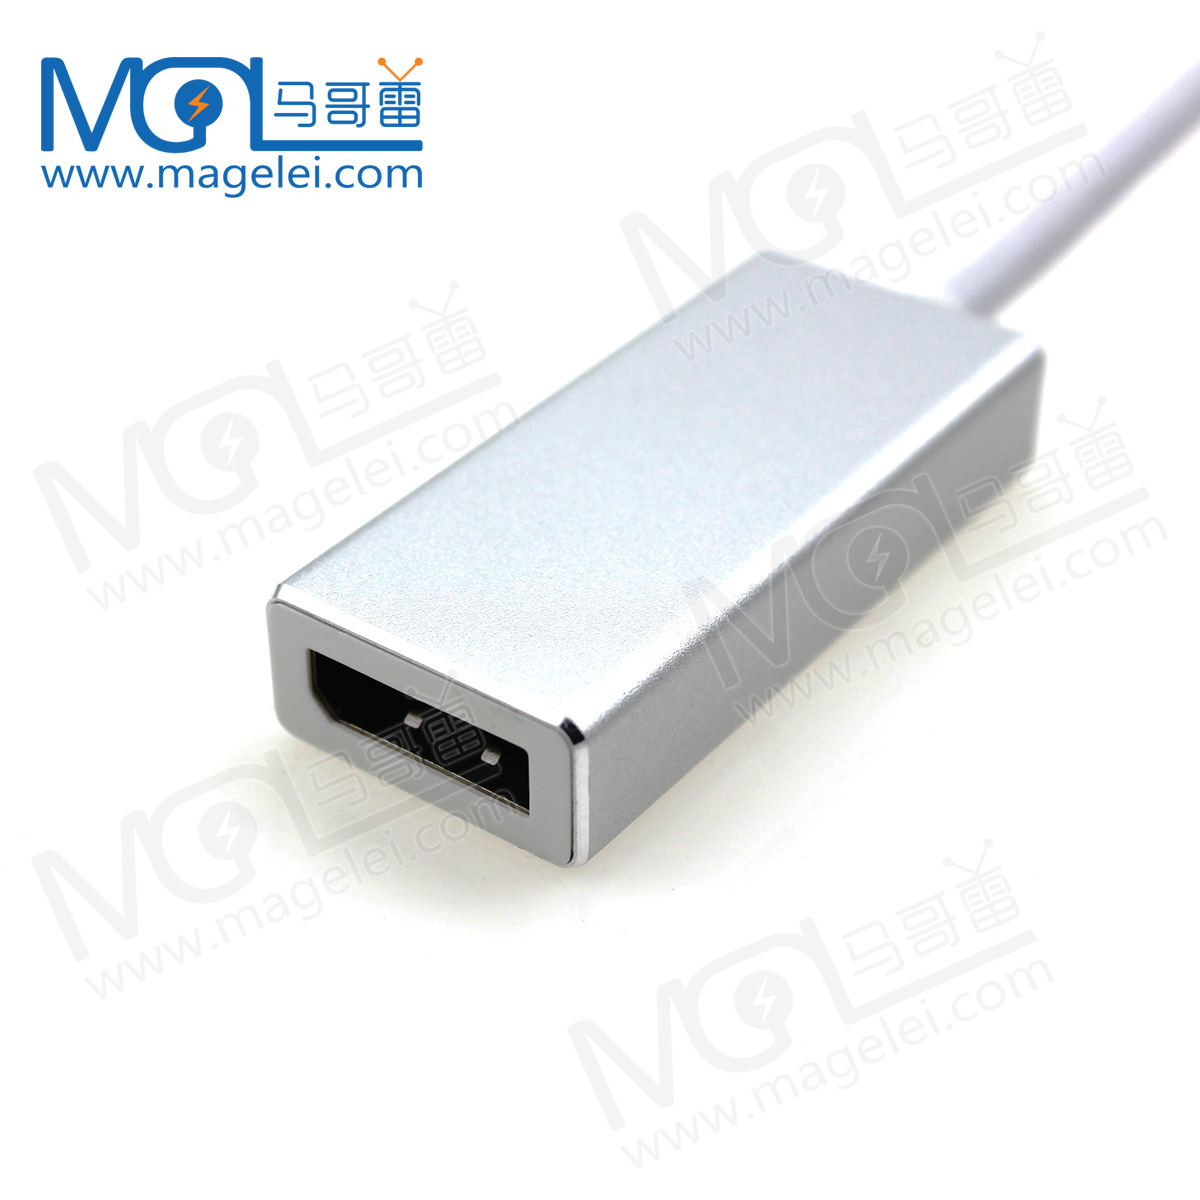 Gold Aluminum Alloy USB C to DisplayPort Adapter USB 3.1 Type C to DP Adapter converter